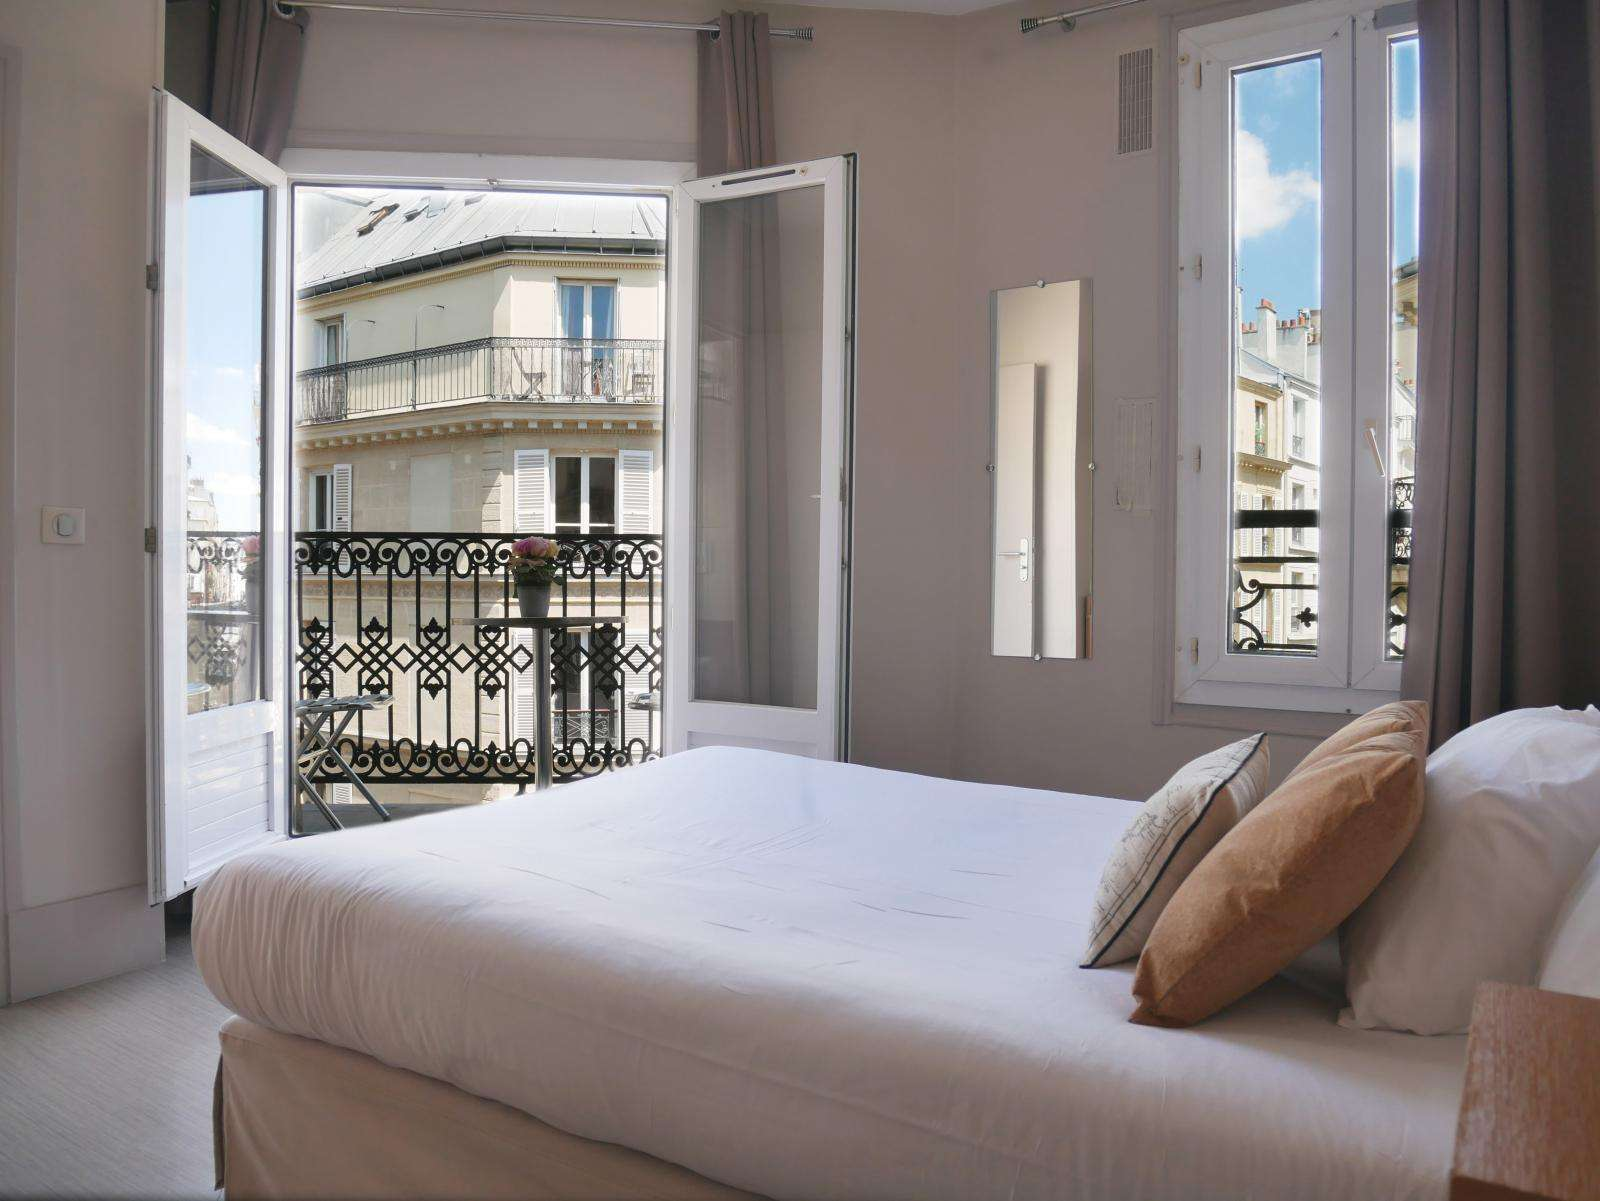 Hôtel Bonséjour | Site Officiel | Montmartre Paris